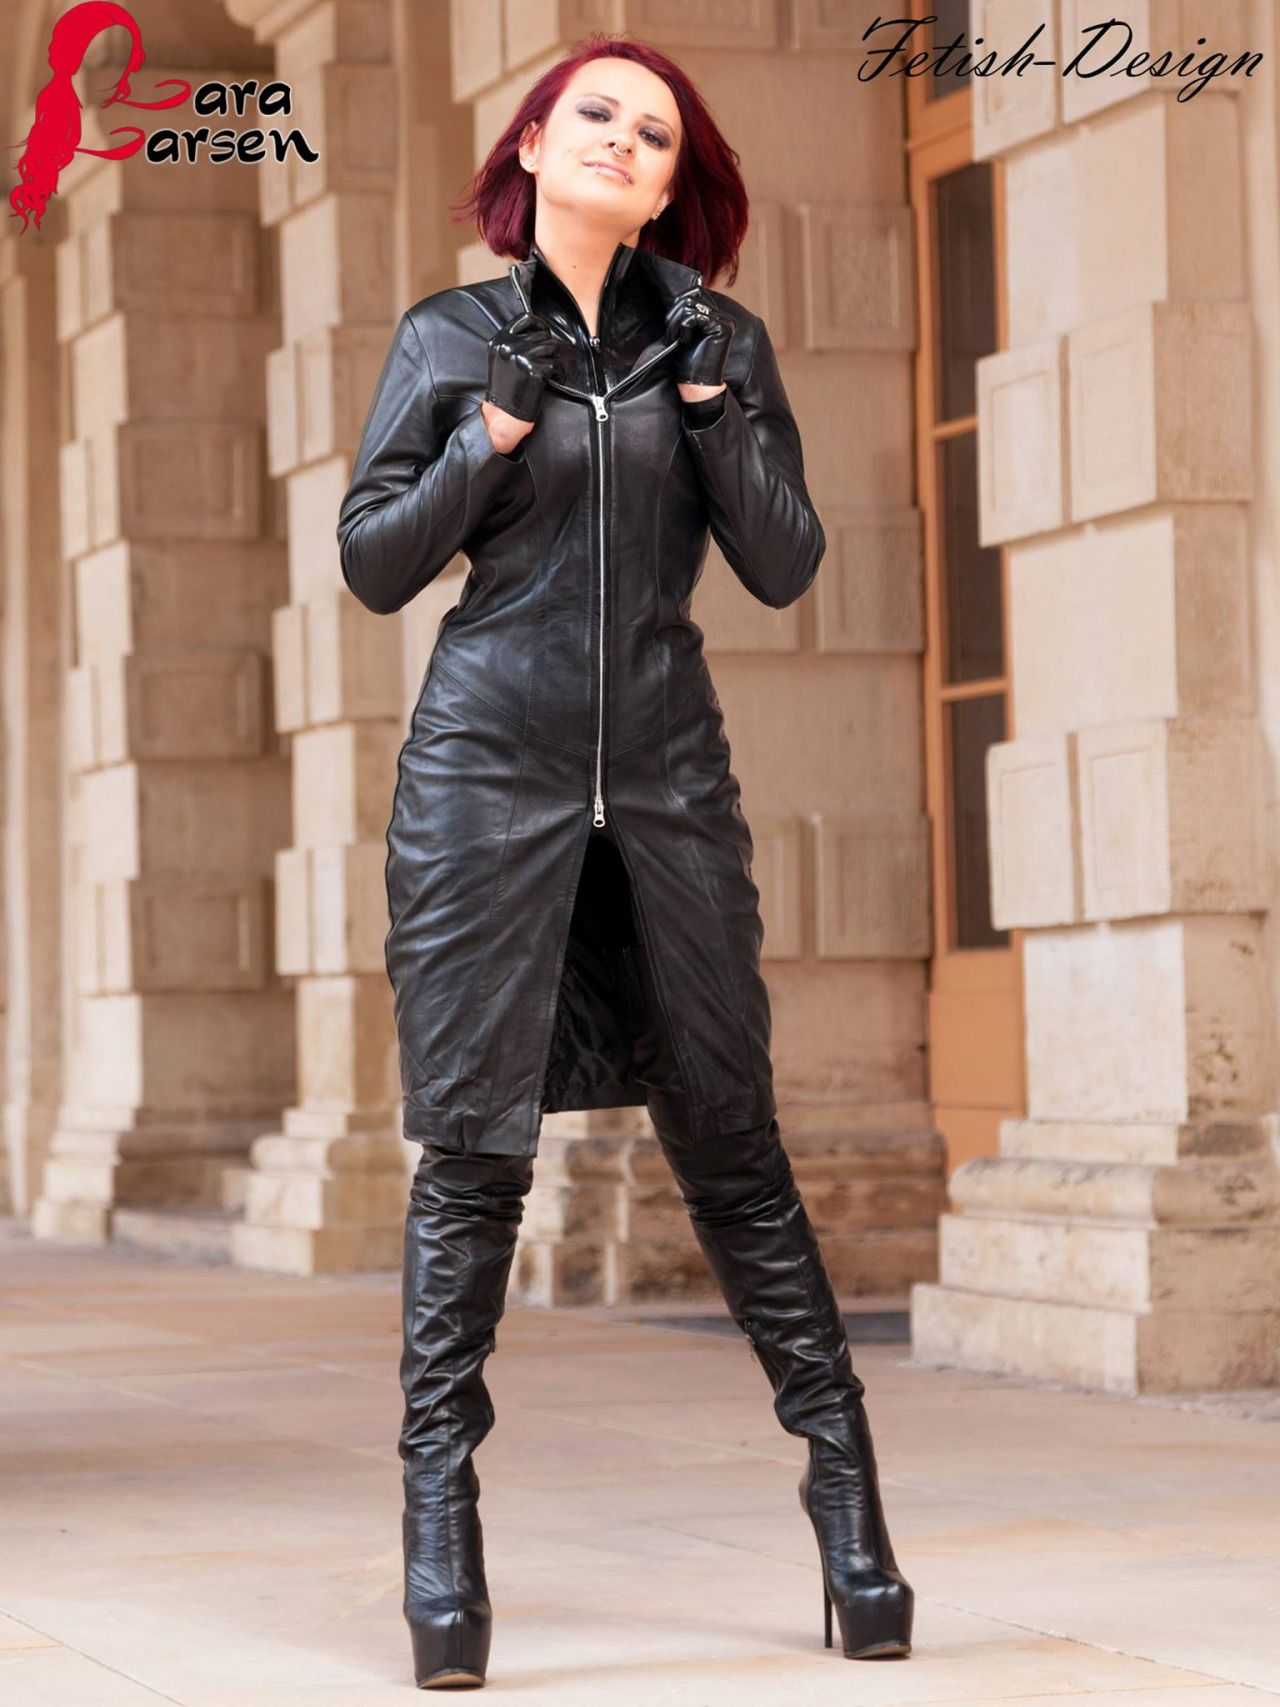 Perfect Women In Leather Boots And Gloves My Celebrity Fernando Berlin